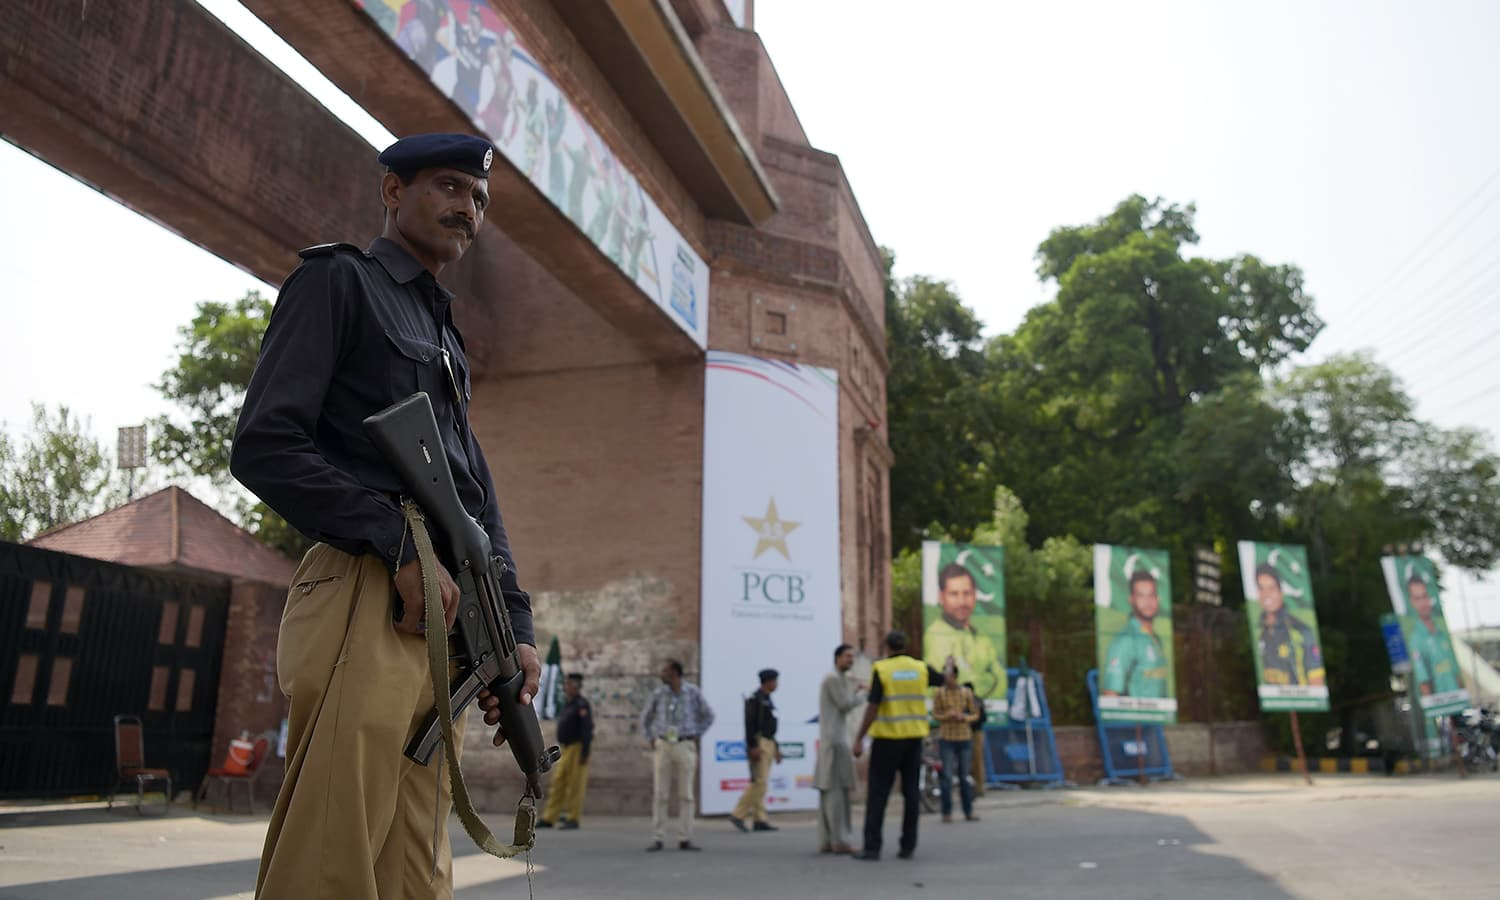 A policeman stands guard at the main entrance of the Gaddafi Cricket stadium in Lahore on September 12. — AFP